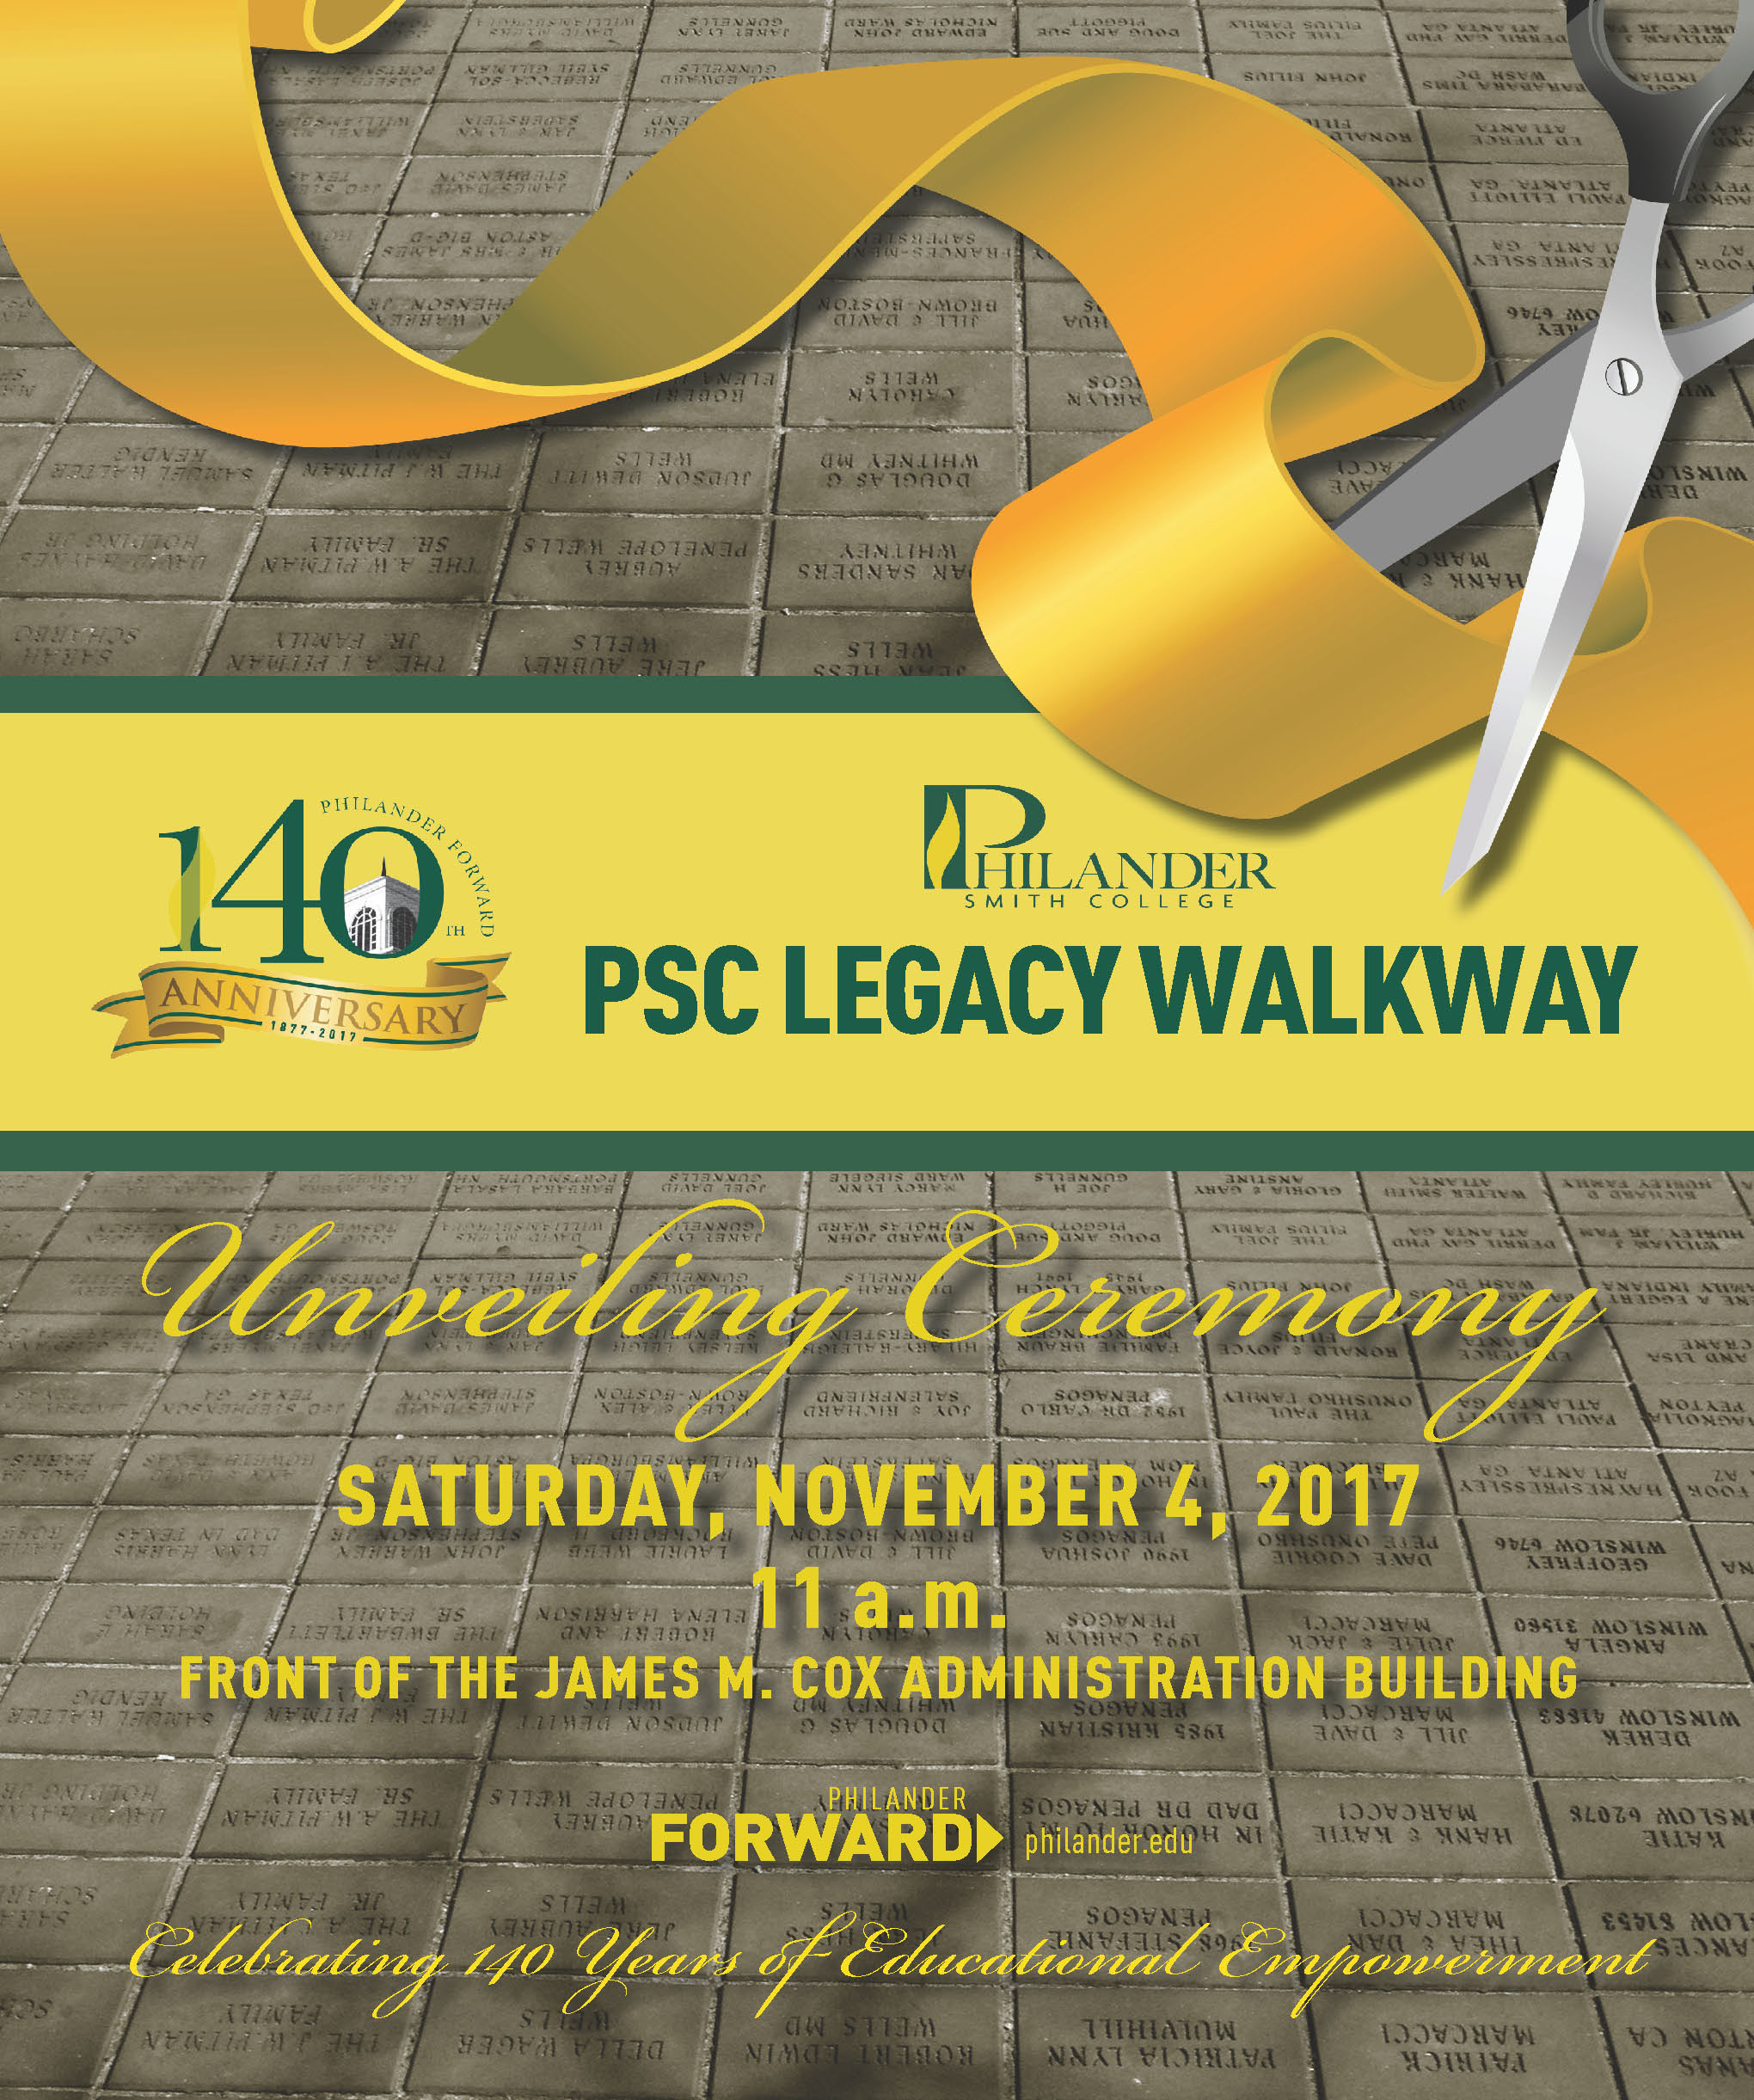 PSC Walkway Unveling Ceremony Flyer 5(1).jpg